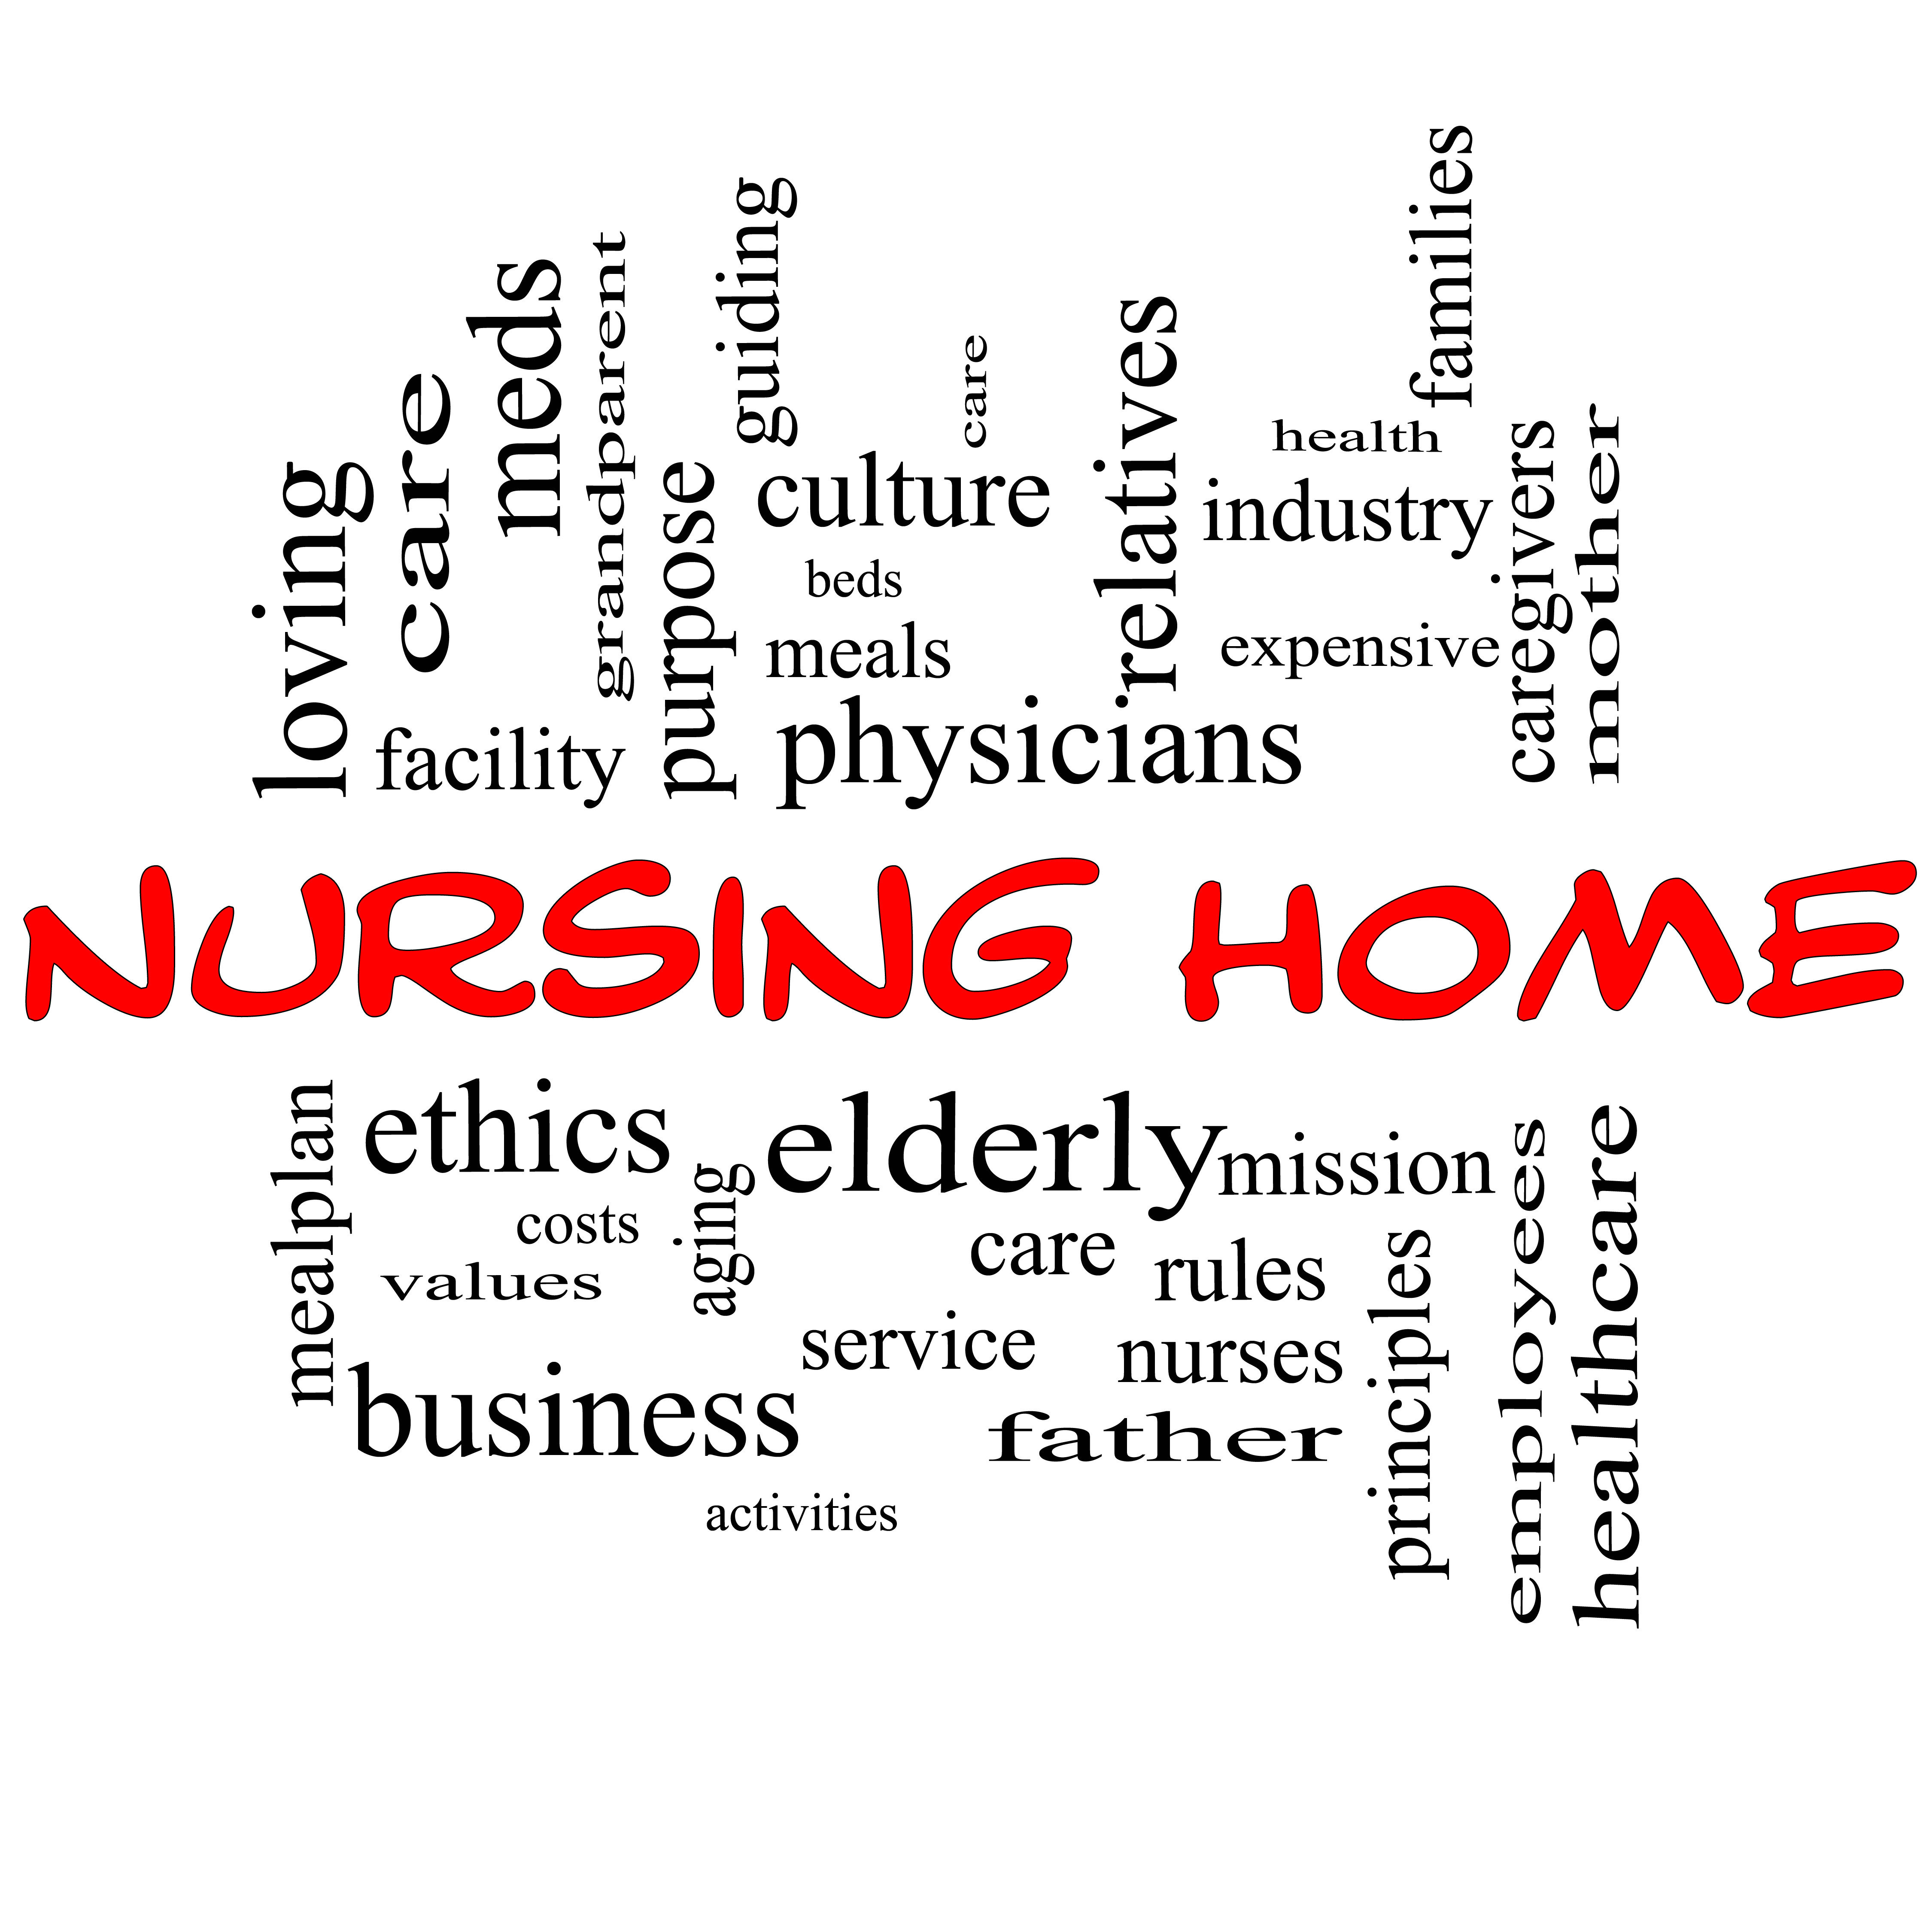 https://www.tlcsr.com/wp-content/uploads/2013/11/Nursing-home.jpg